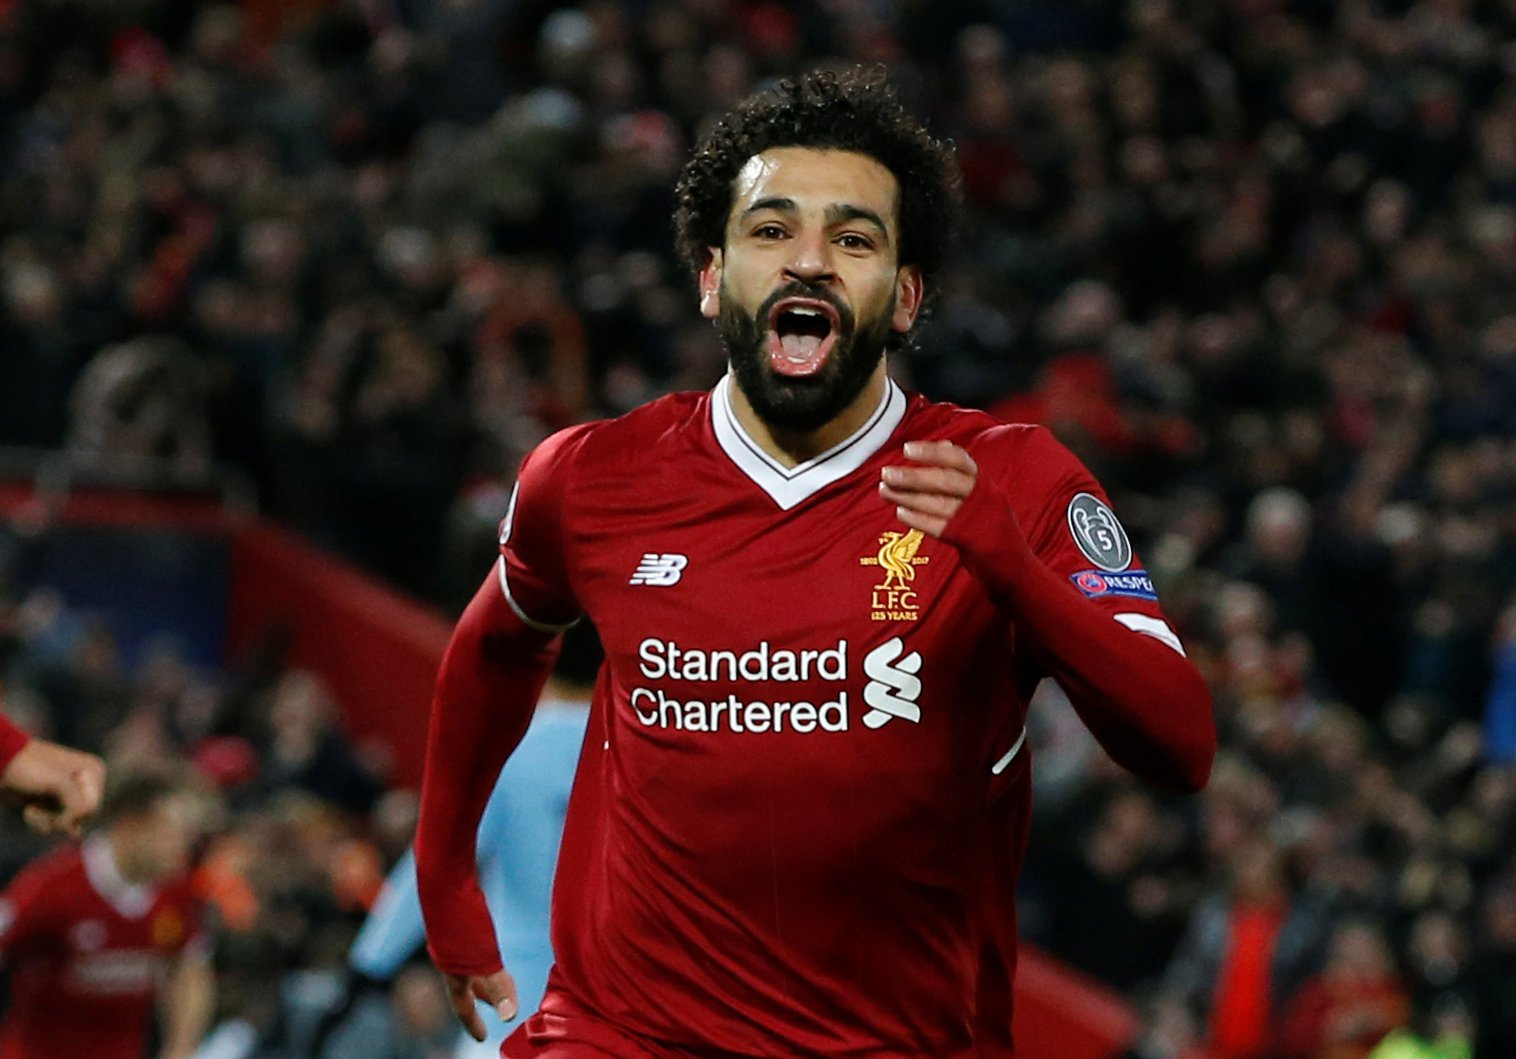 Soccer Football - Champions League Quarter Final First Leg - Liverpool vs Manchester City - Anfield, Liverpool, Britain - April 4, 2018 Liverpool's Mohamed Salah celebrates scoring their first goal REUTERS/Andrew Yates